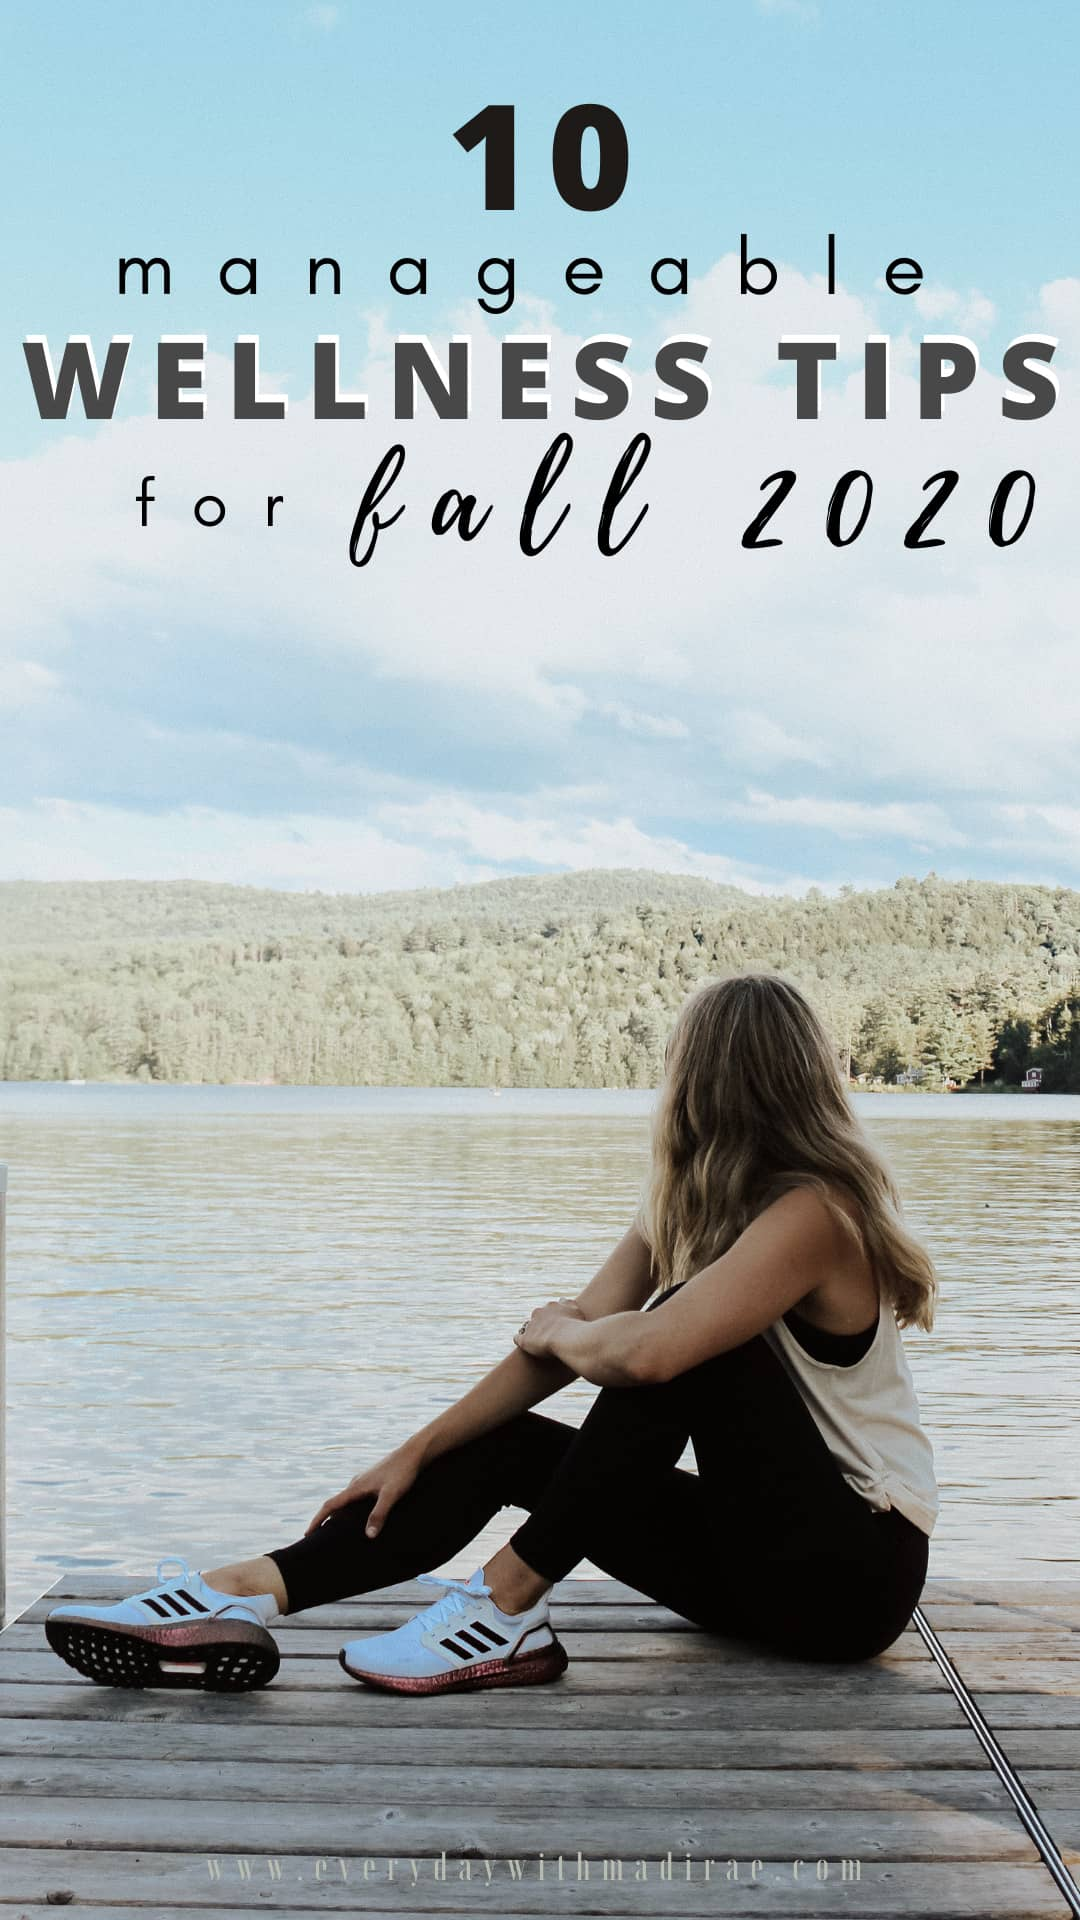 Sharing 10 manageable lifestyle wellness tips for fall 2020, including better sleep suggestions, movement, self care, mindset shifts, & more!